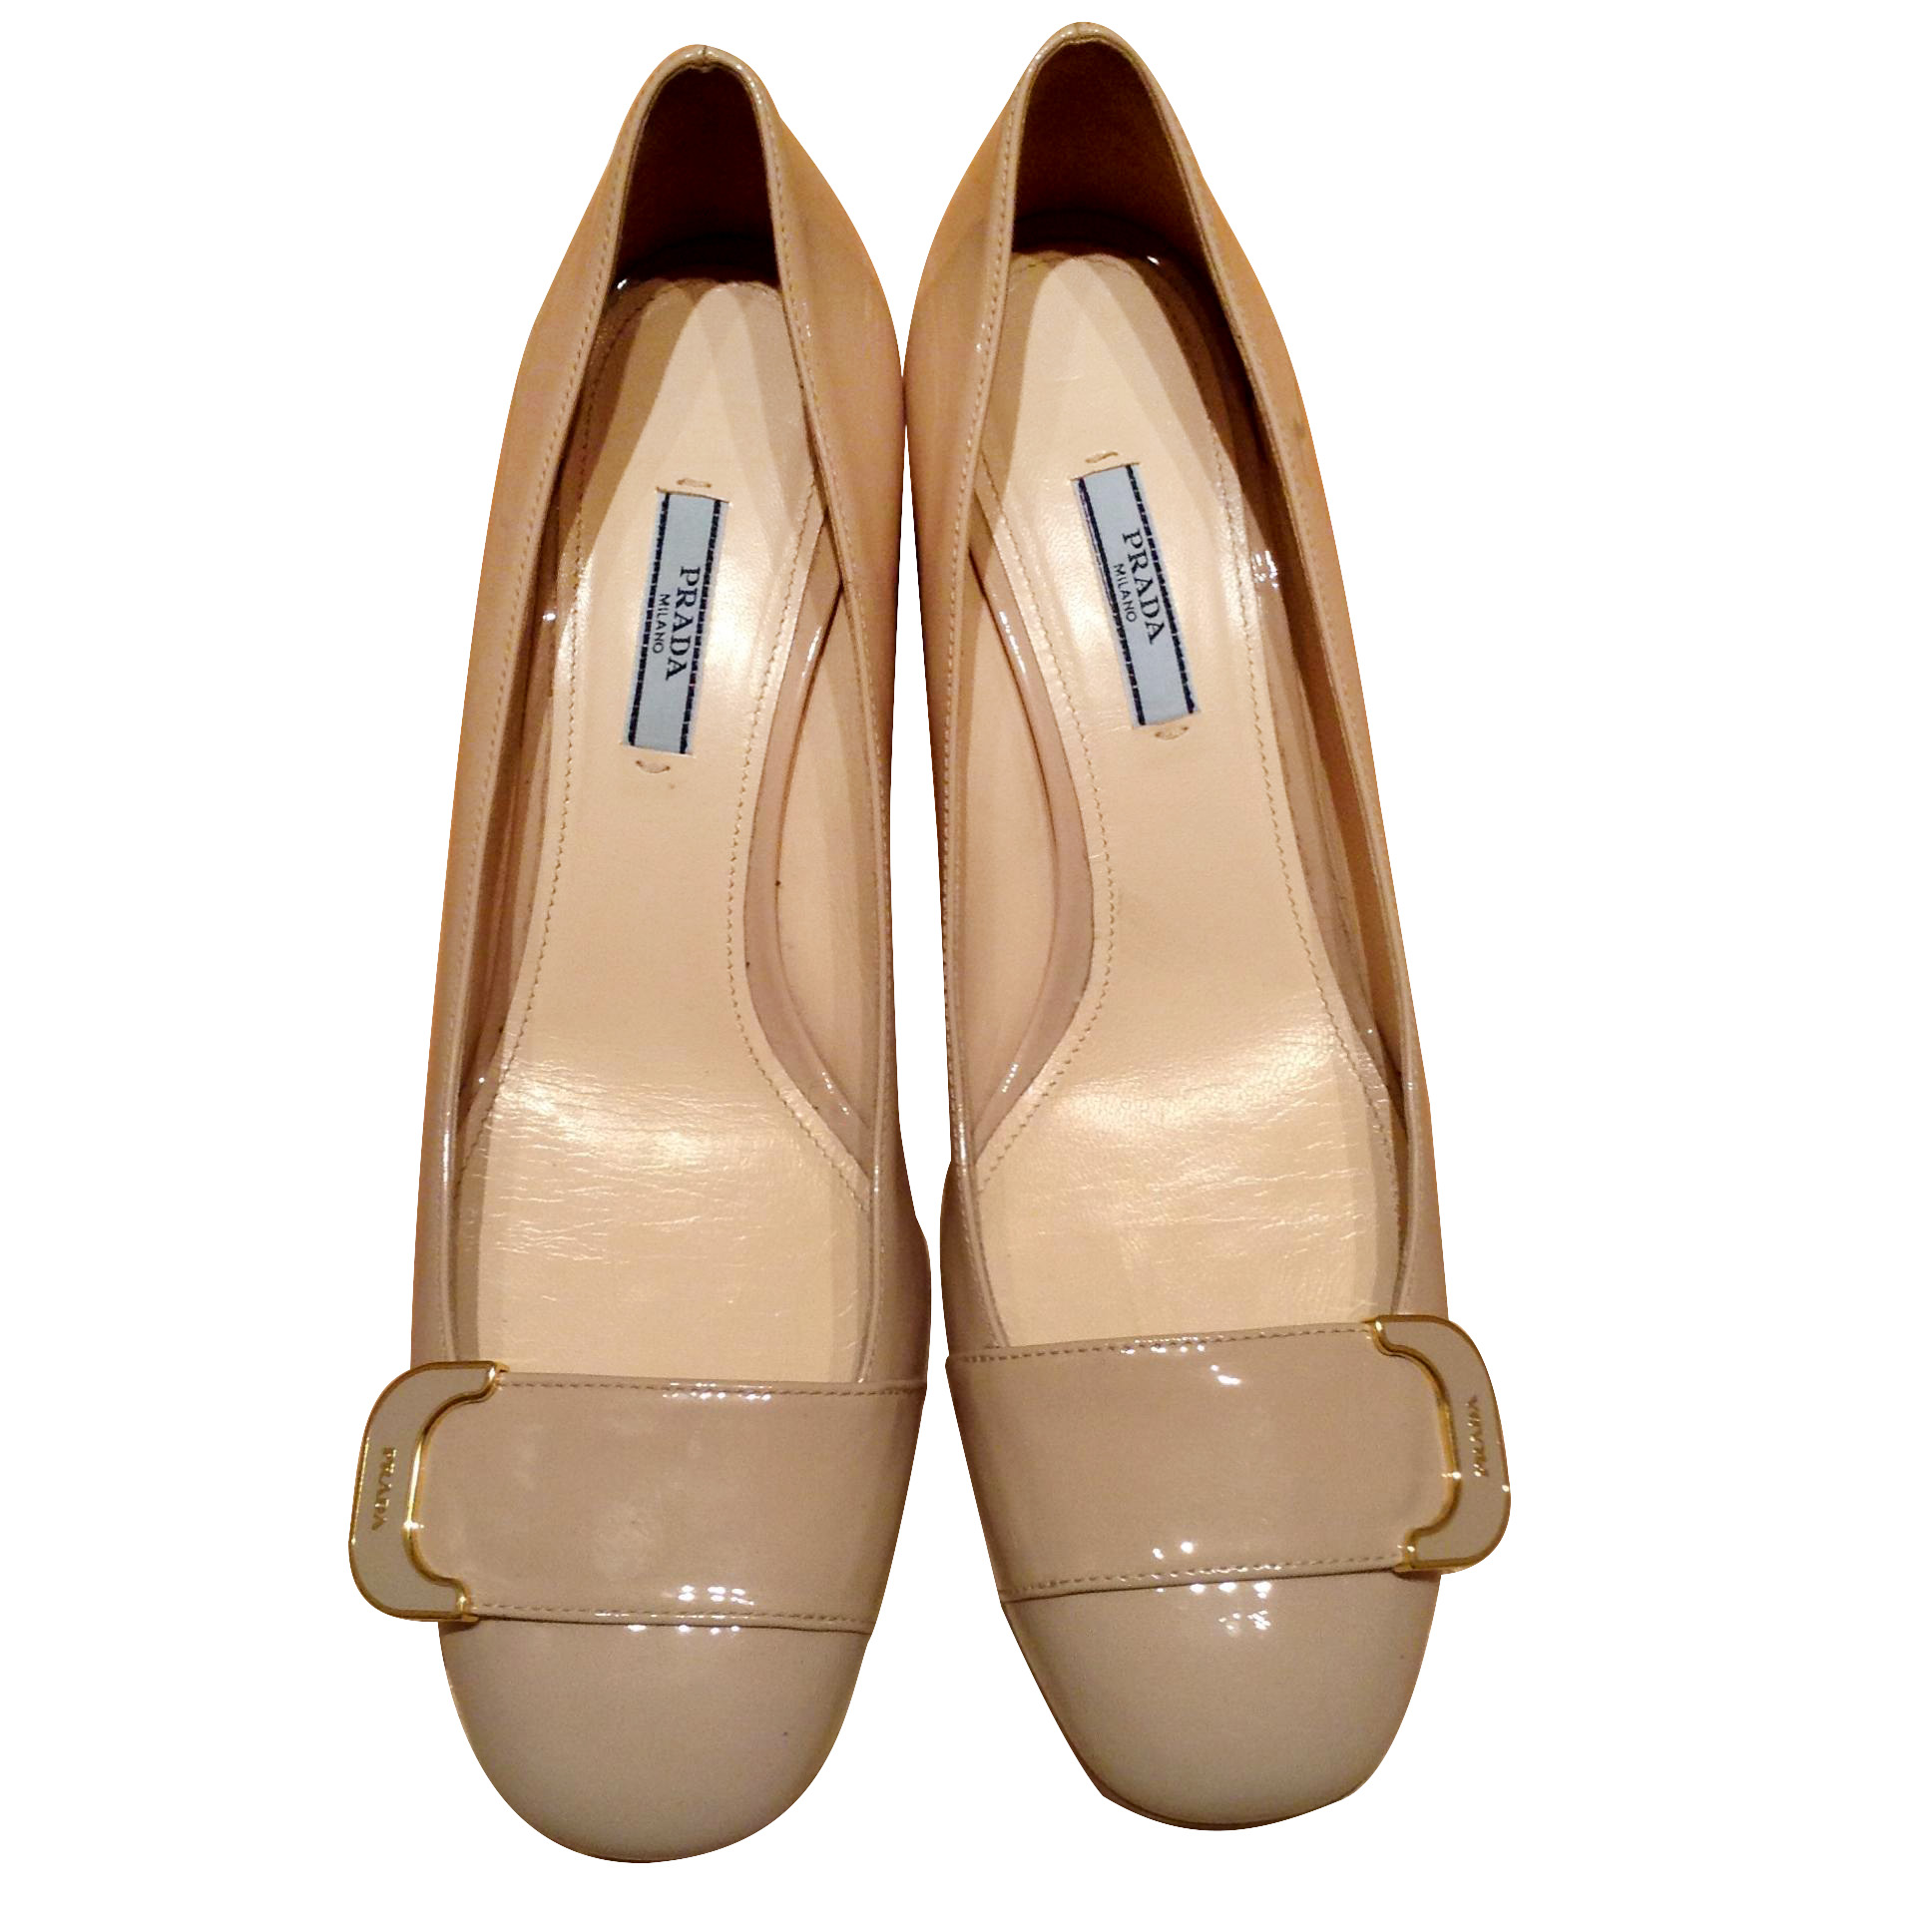 Prada Beige Square Block Heels Shoes  5c6e8222f